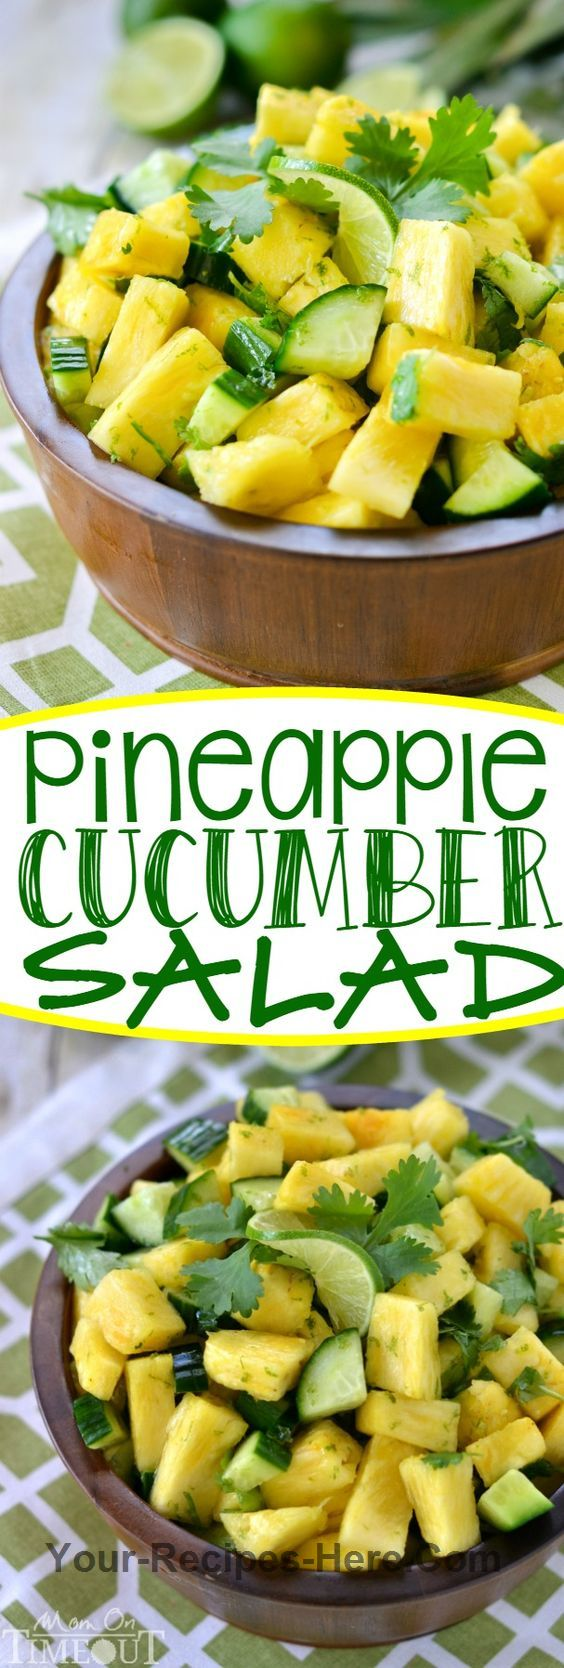 Pineapple Cucumber Lime Salad Vegan, Gluten free, Paleo Produce 1/3 cup Cilantro 1 English cucumber 2 Limes 1 Pineapple Baking & Spices 1 Salt and pepper